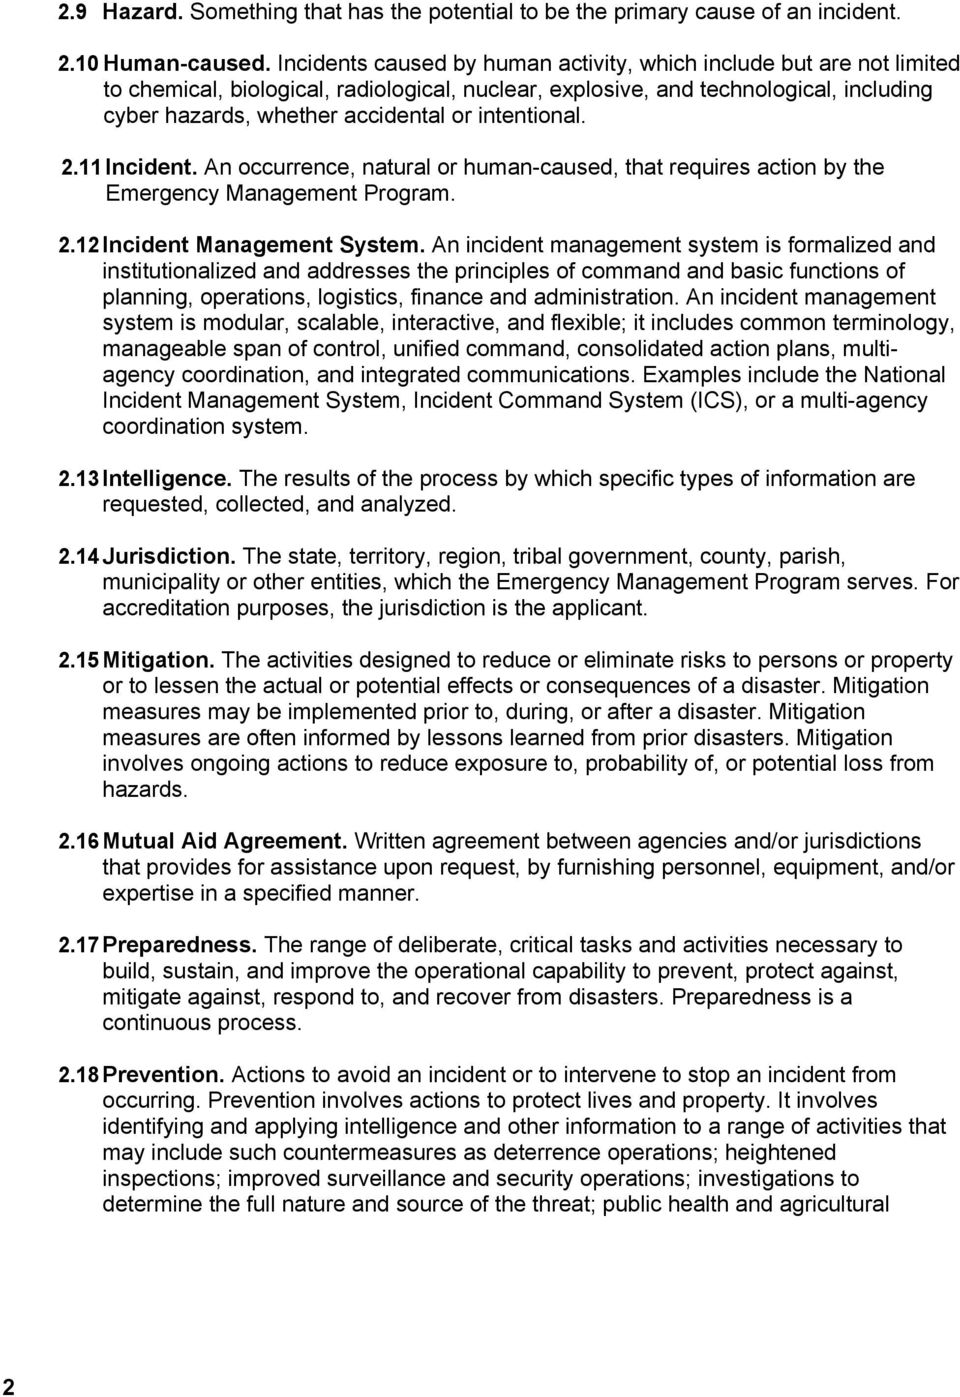 intentional. 2.11 Incident. An occurrence, natural or human-caused, that requires action by the Emergency Management Program. 2.12 Incident Management System.